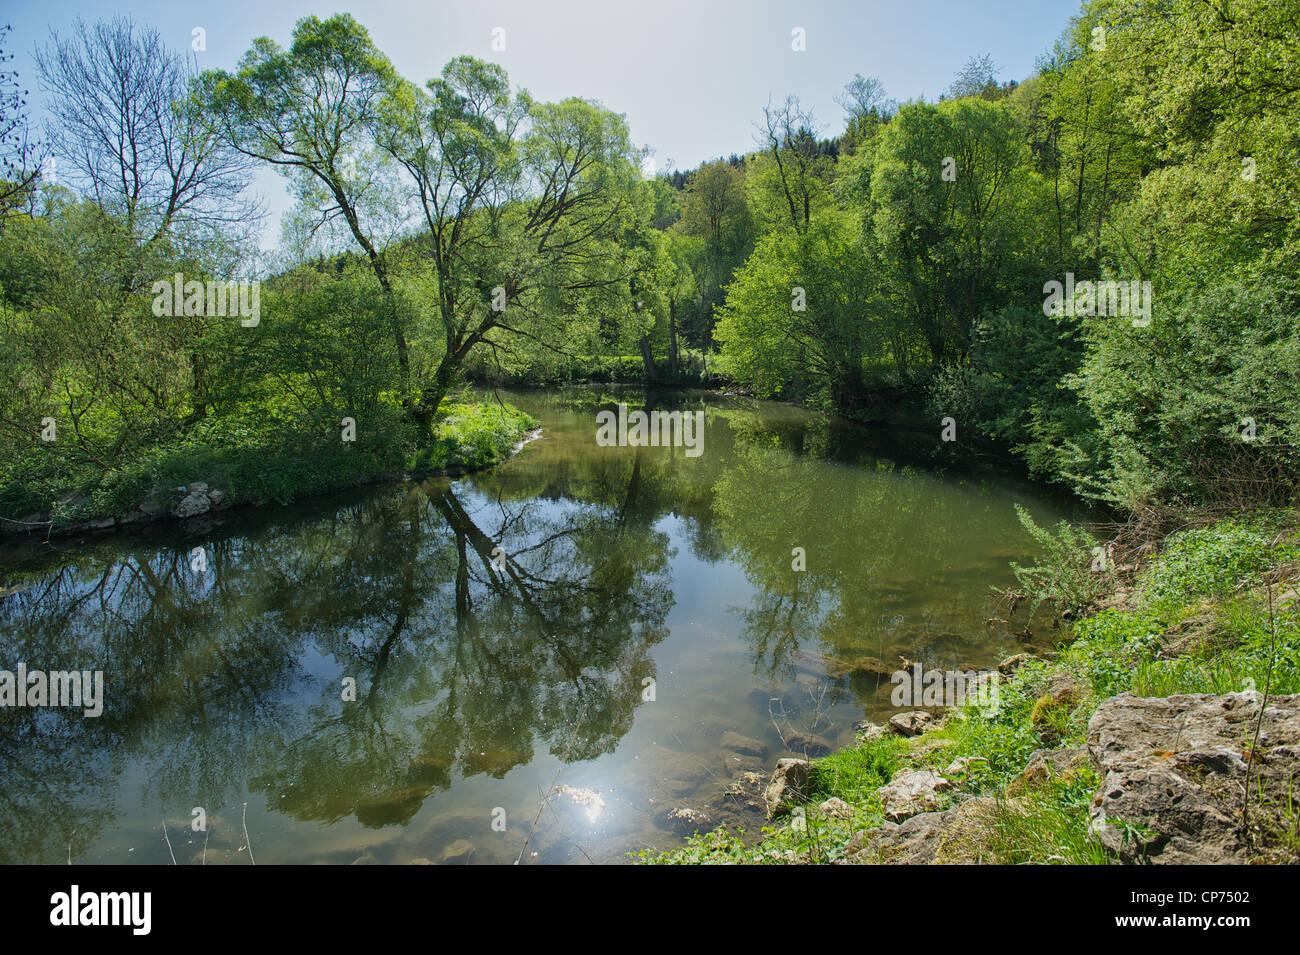 The bend of the river Rems at Lorch with a tree reflected in it - Stock Image